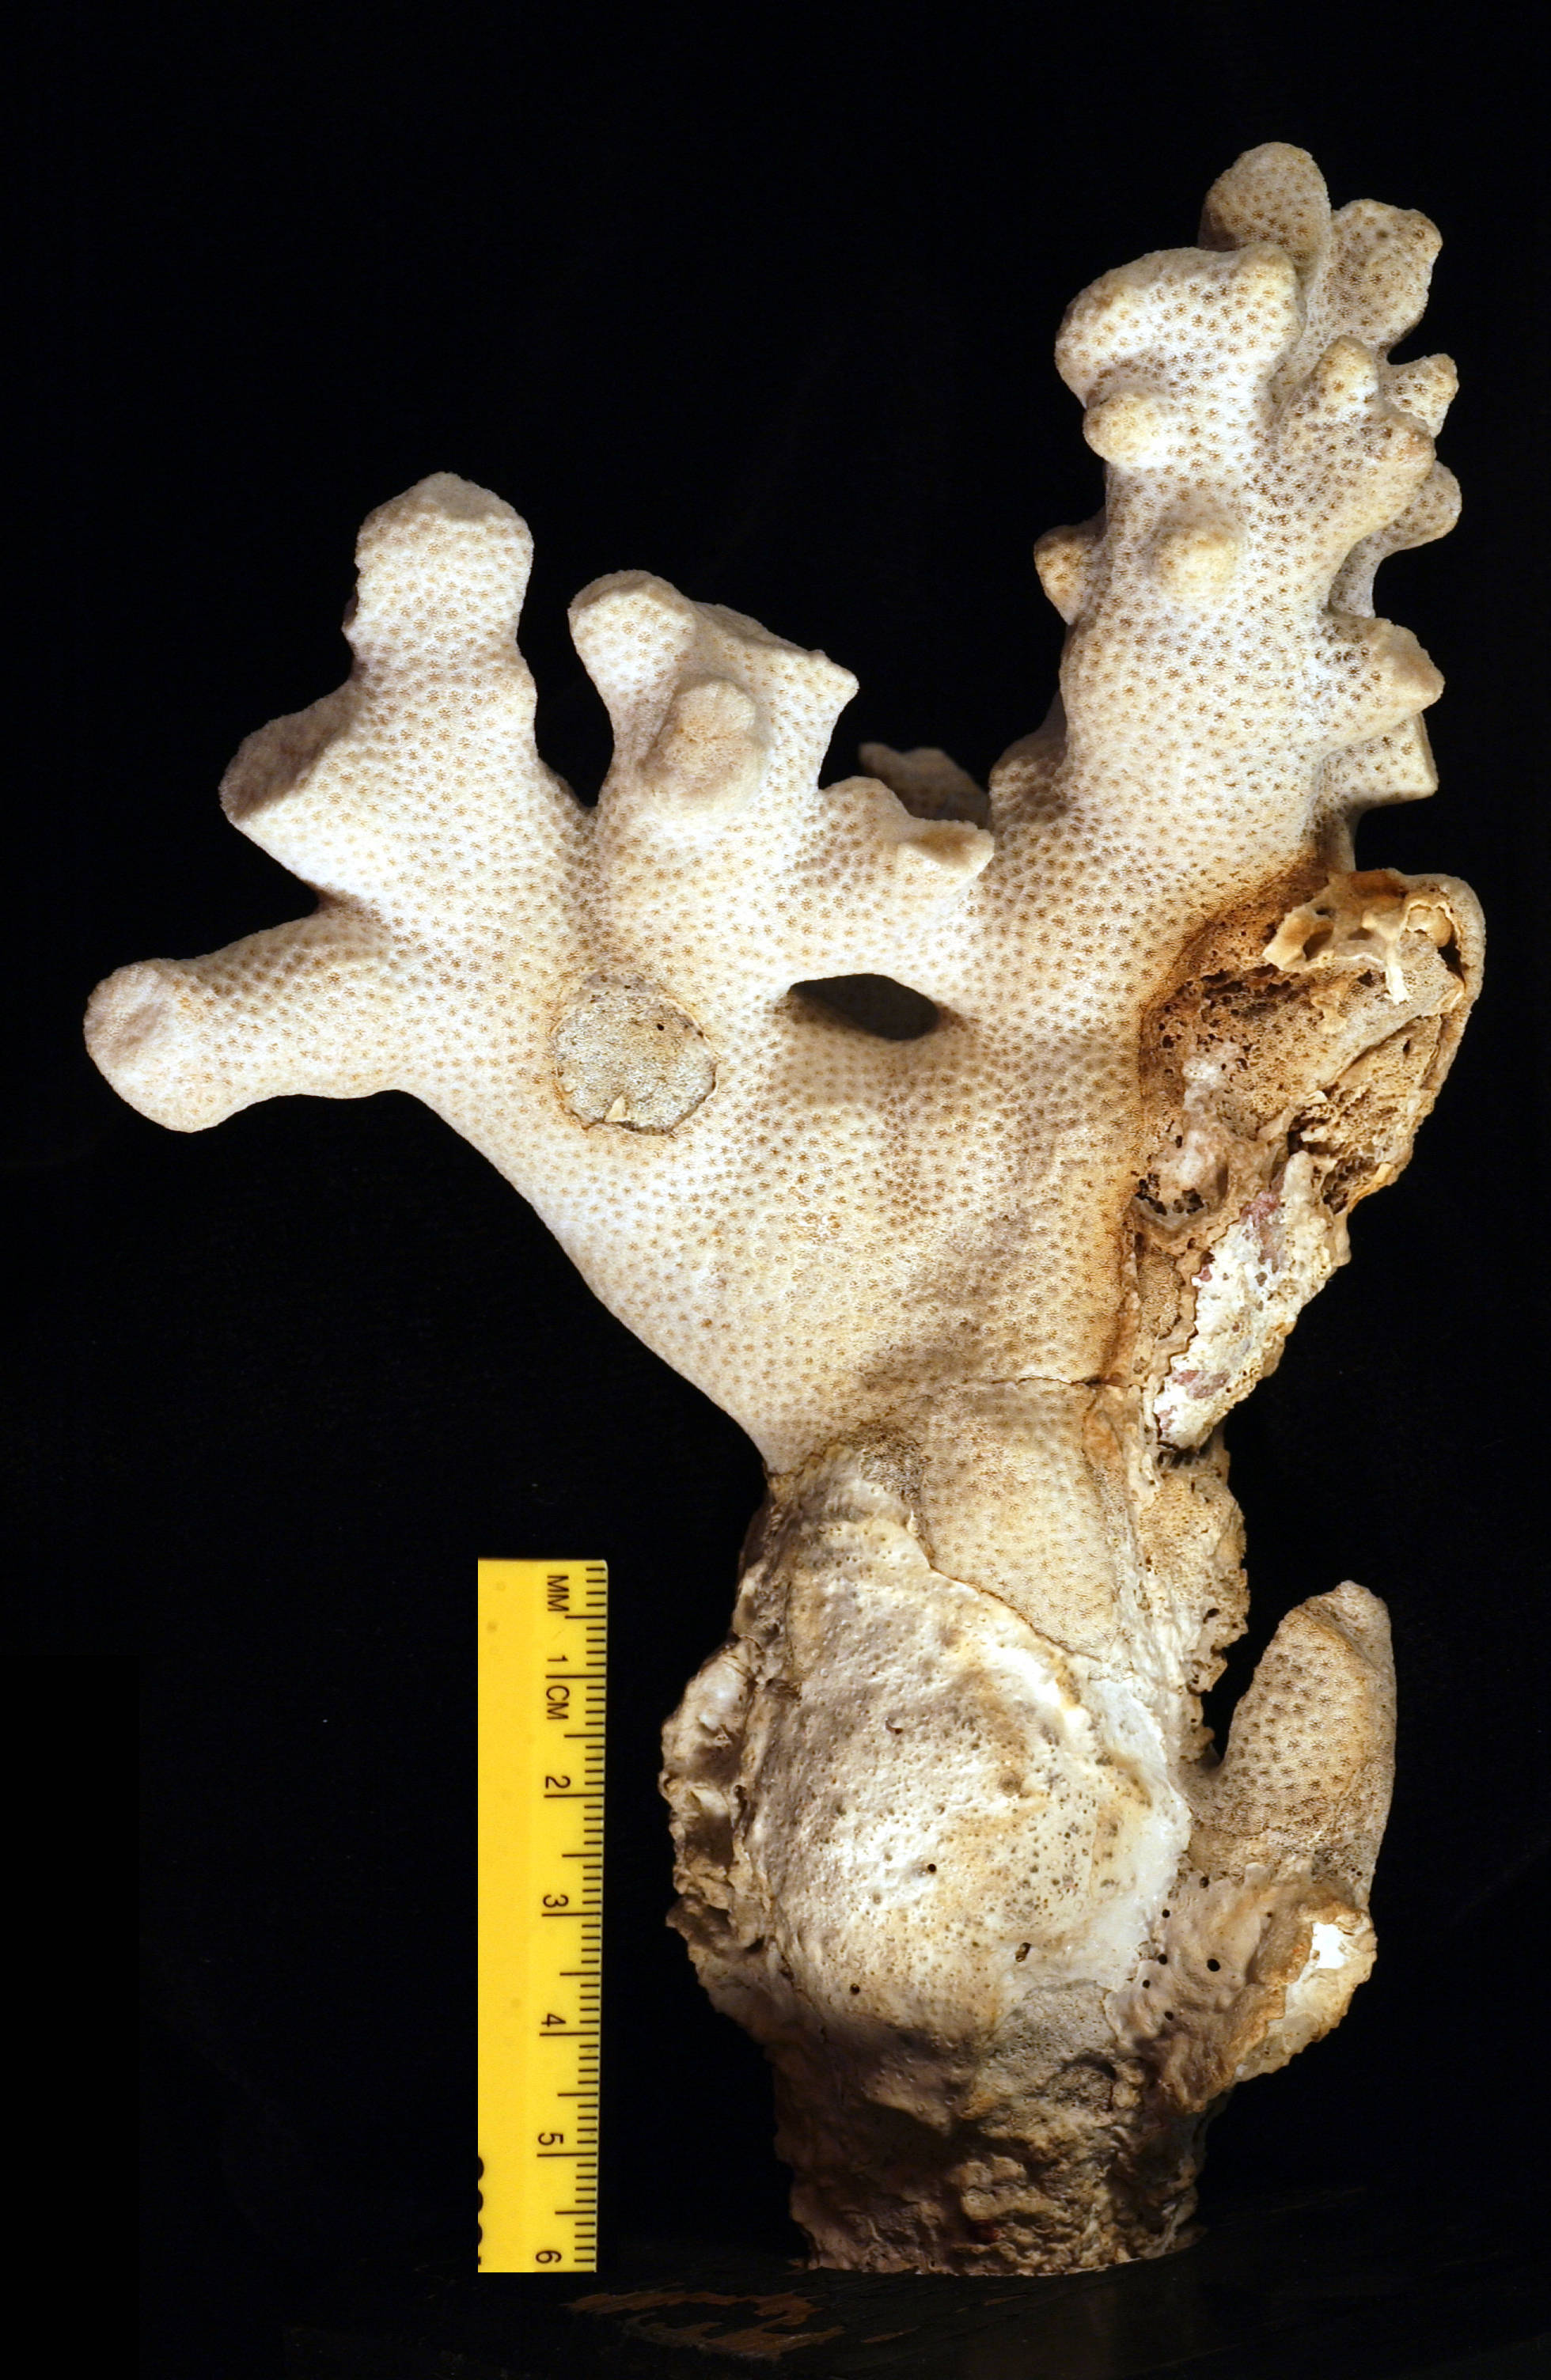 Image of hump coral